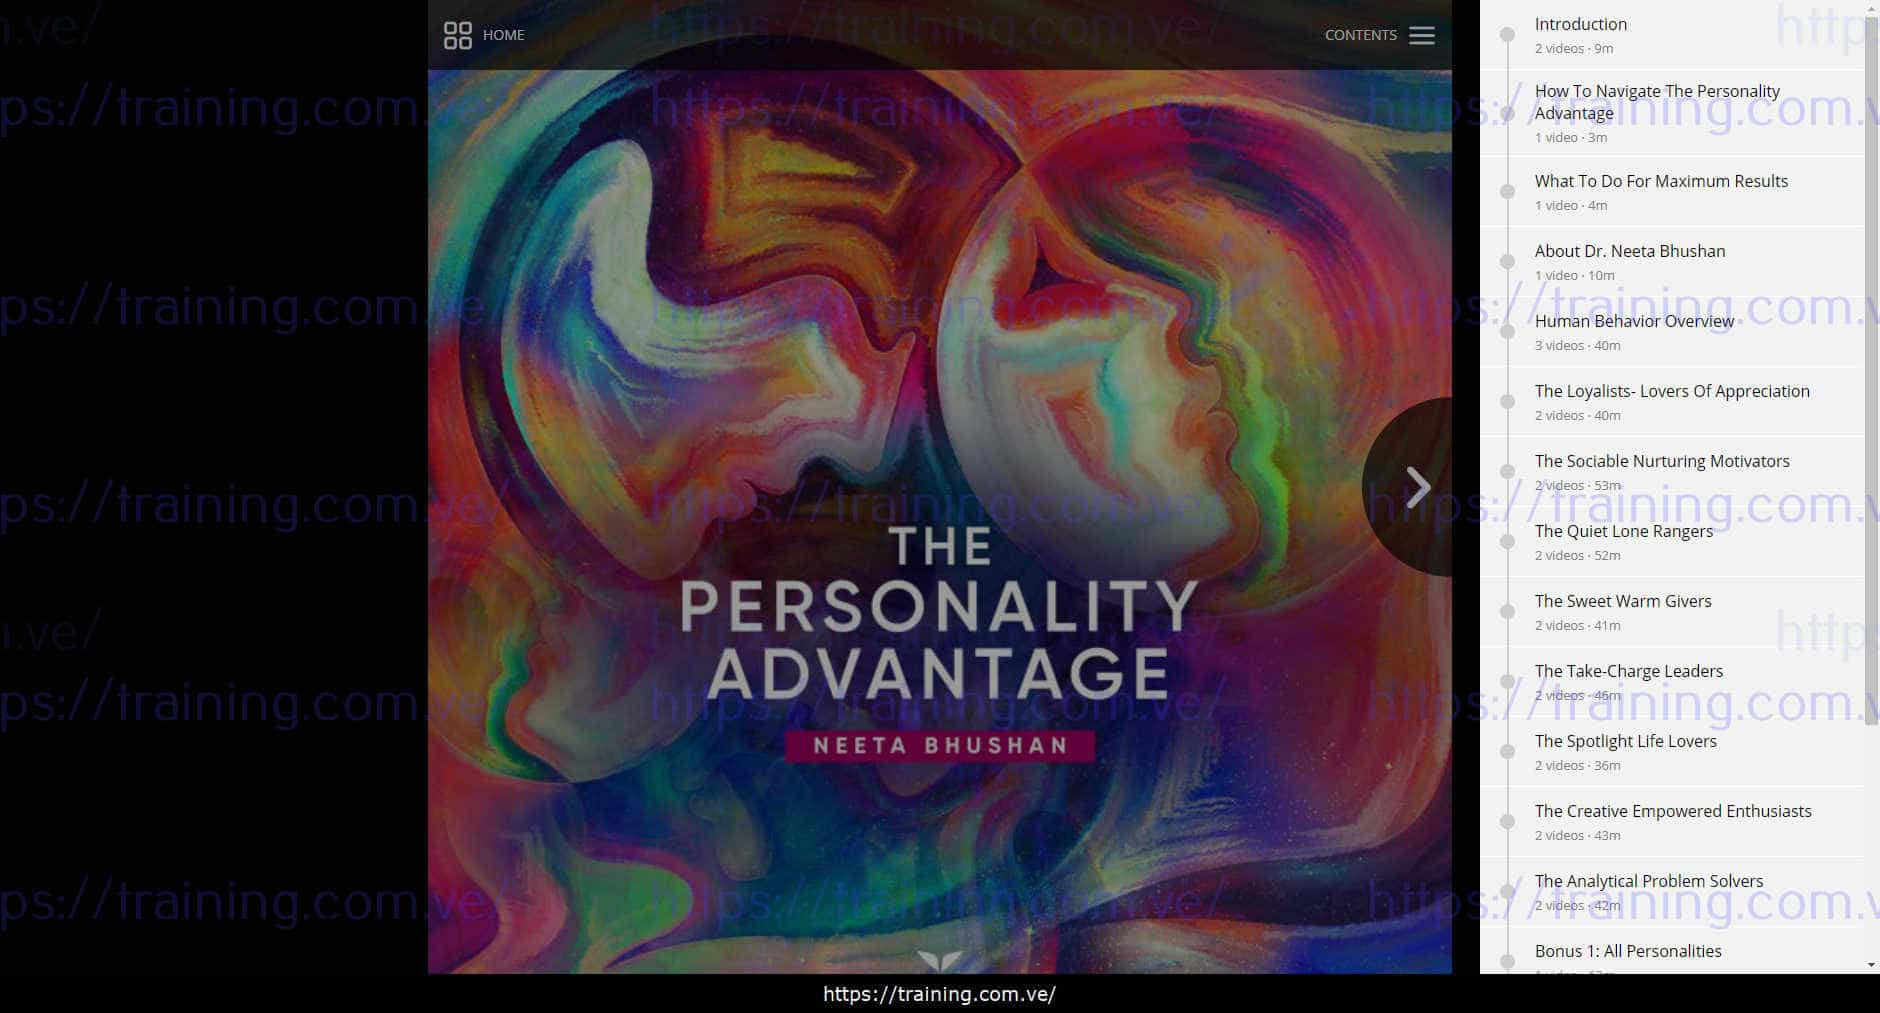 Personality Advantage by Neeta Bhushan Download